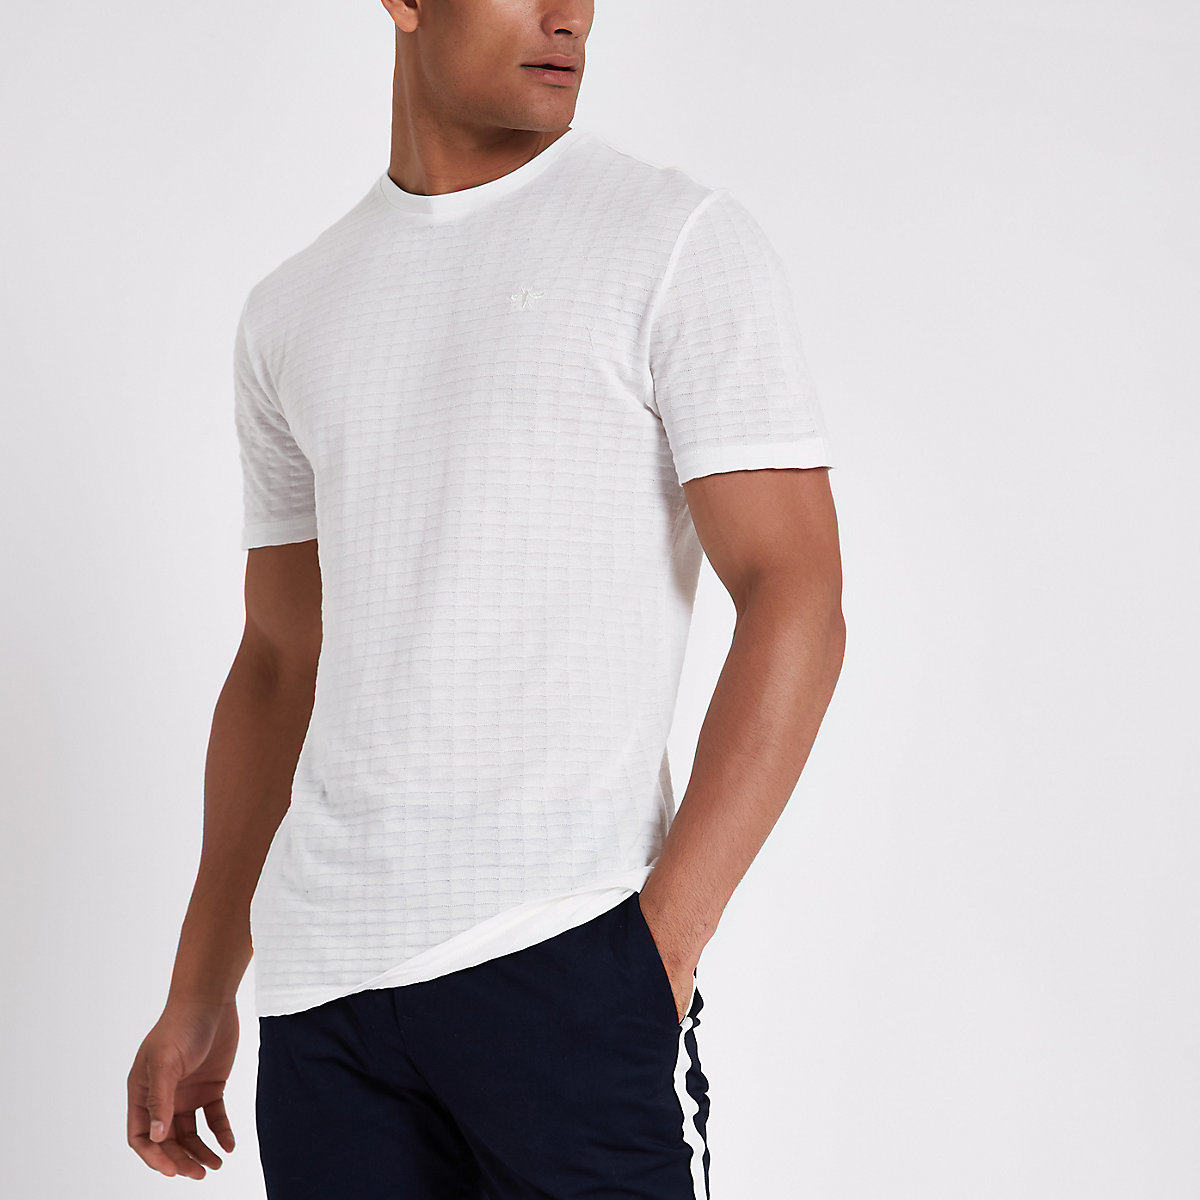 White waffle slim fit short sleeve T-shirt